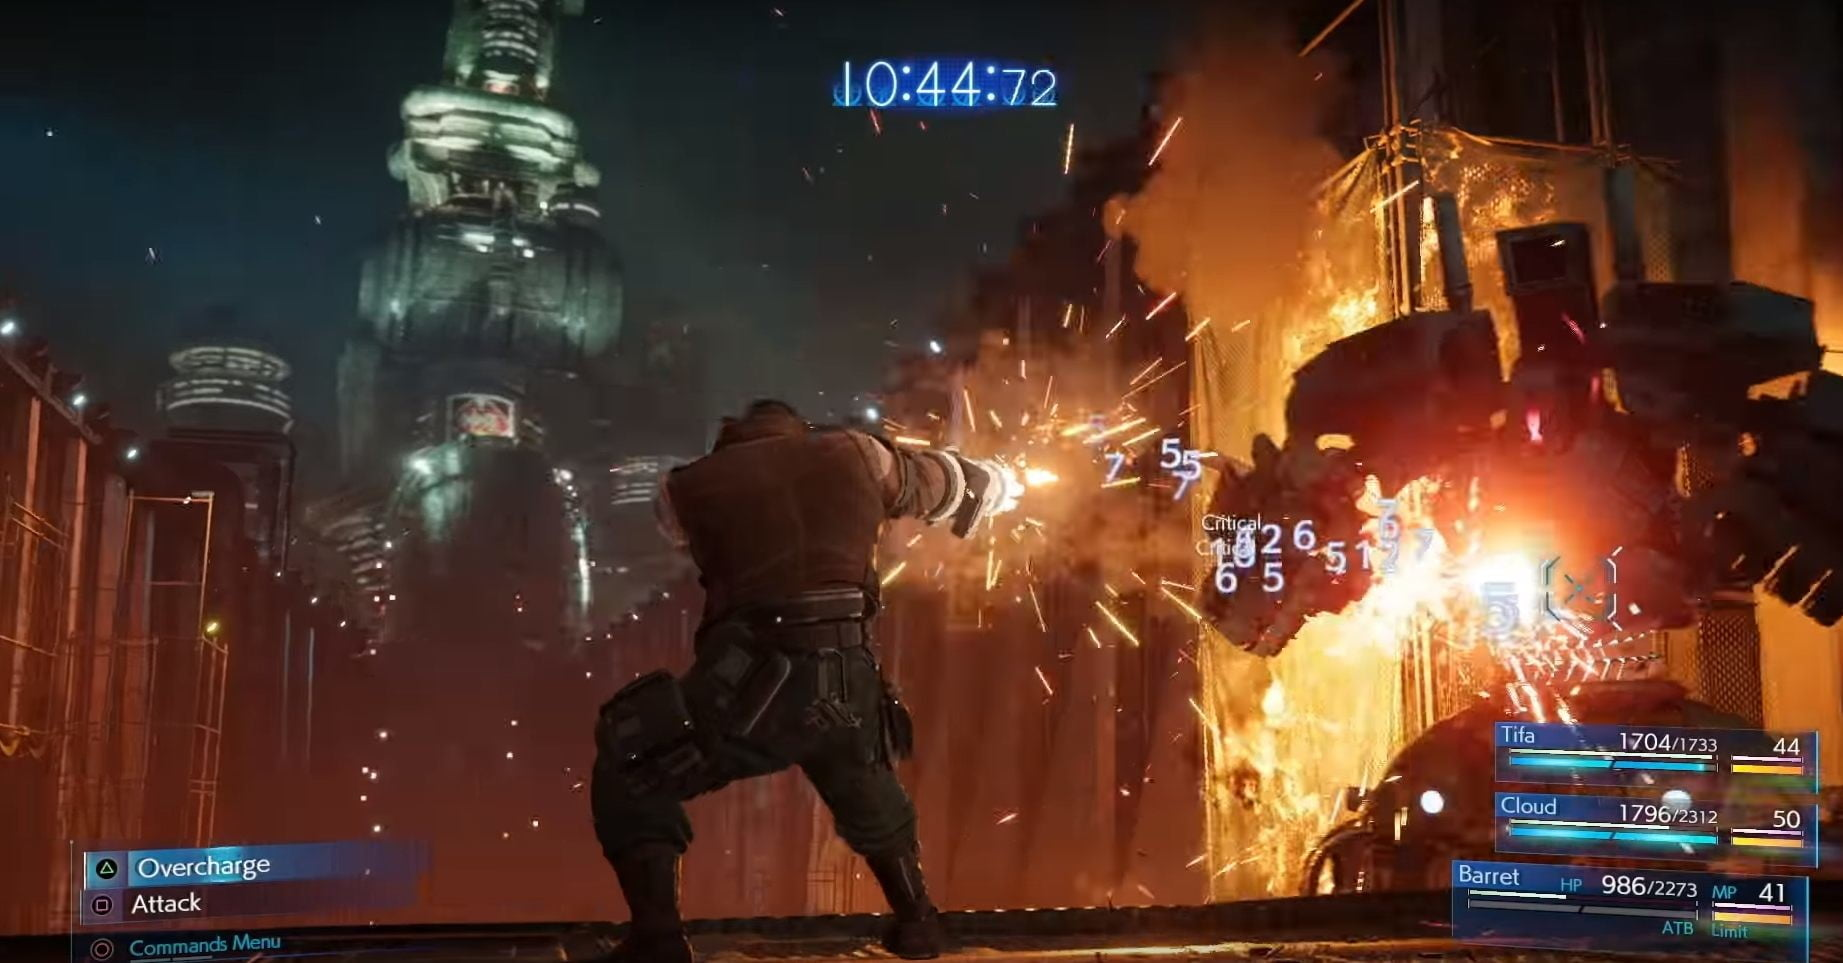 A fan re-created a FF7 Remake battle scene using Dreams and